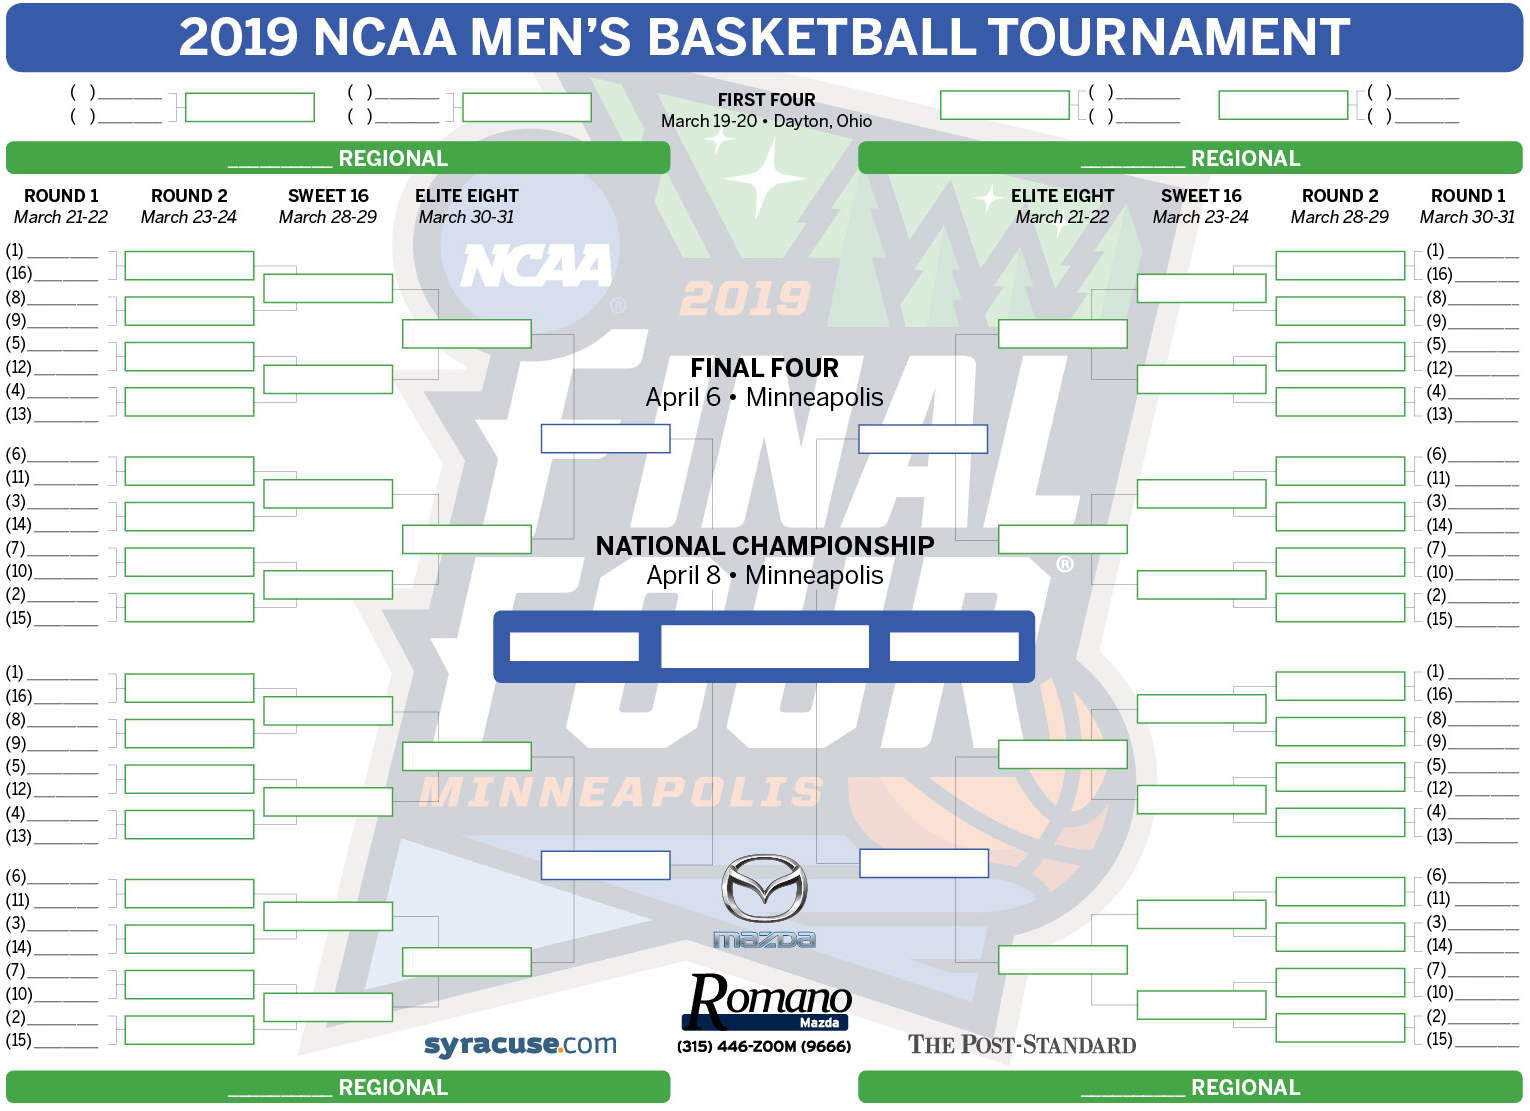 2019 NCAA Men's Basketball Tournament Bracket